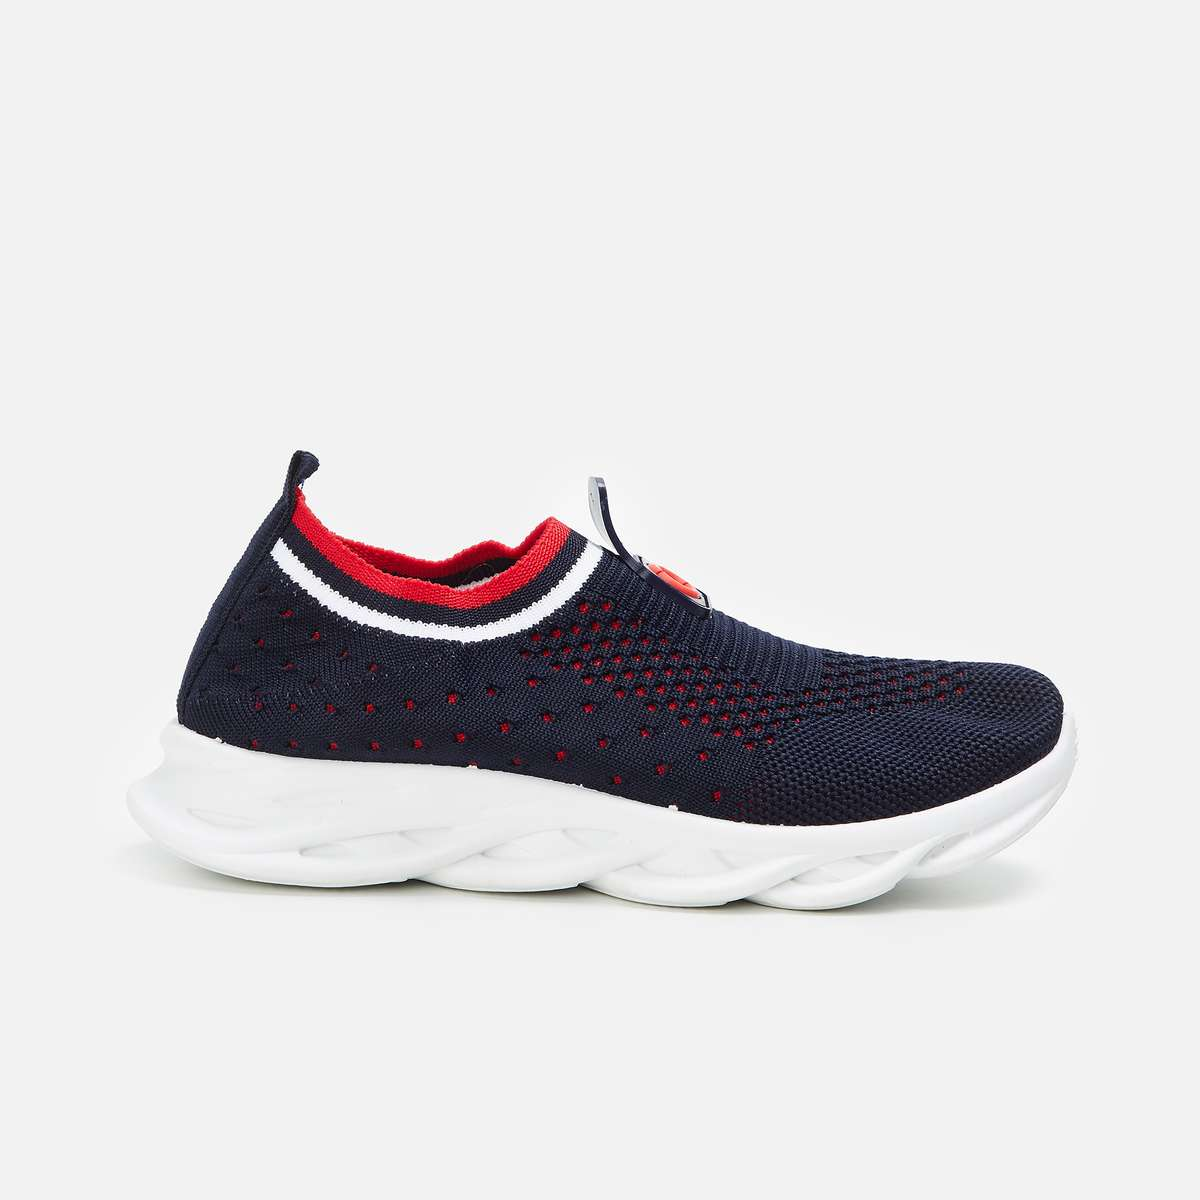 3.FAME FOREVER Boys Textured Sock-Knit Shoes